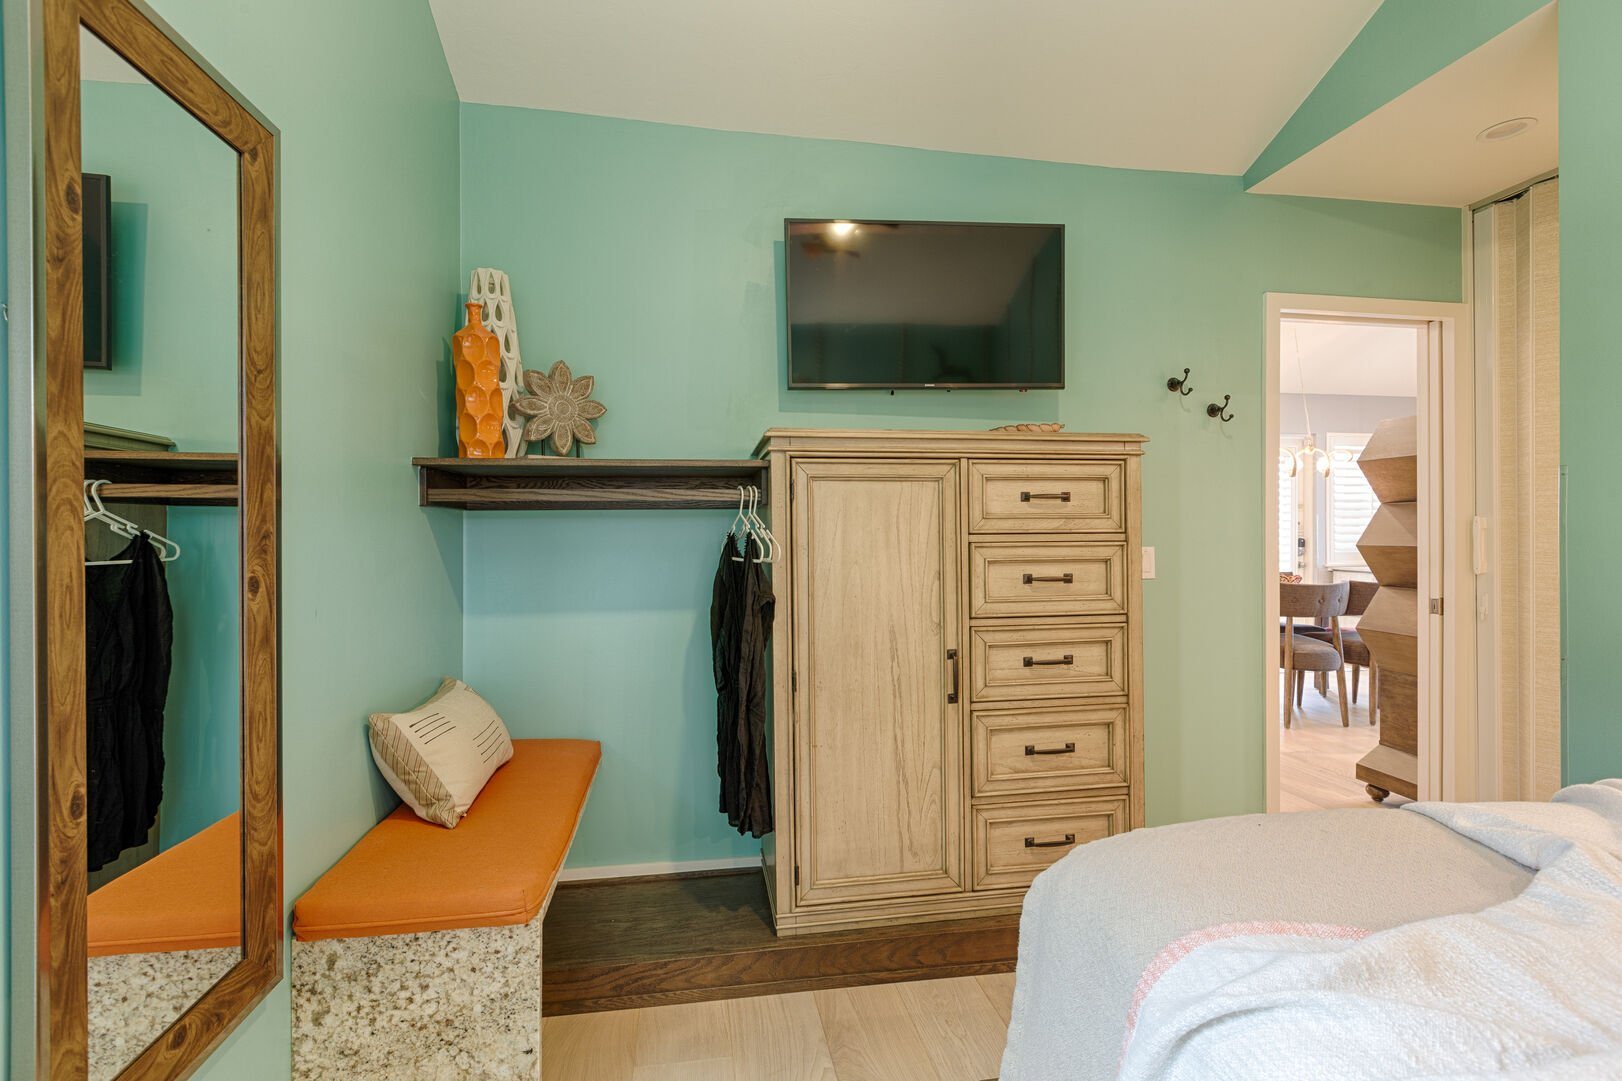 Mirror, TV, and Tall Dresser in a Bedroom